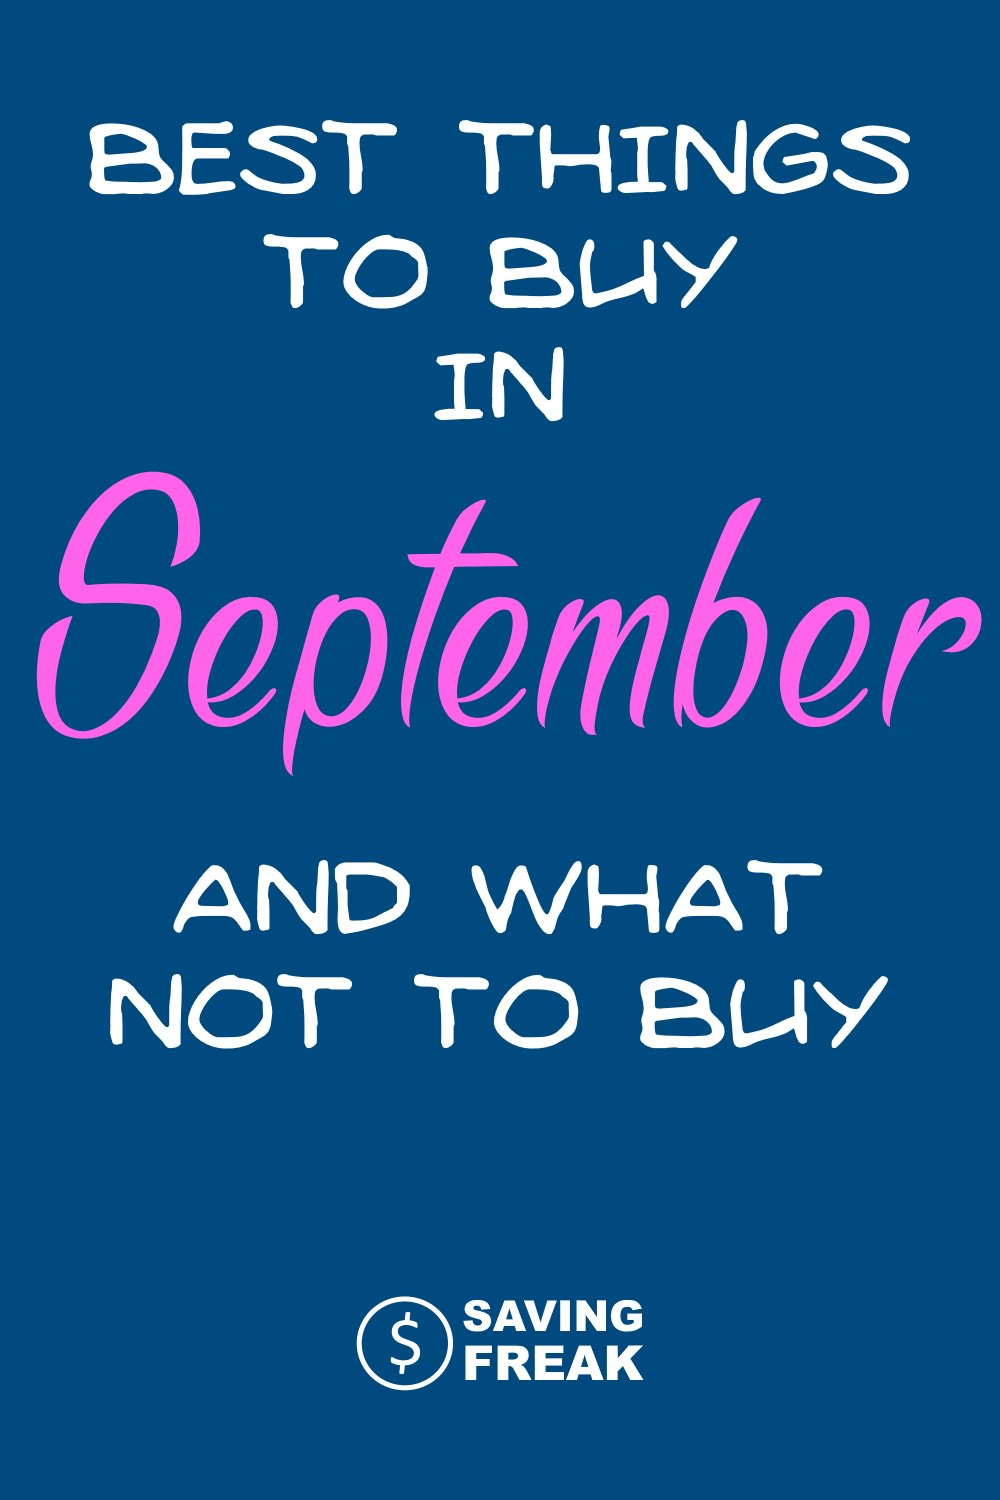 Best Things to Buy in September sales